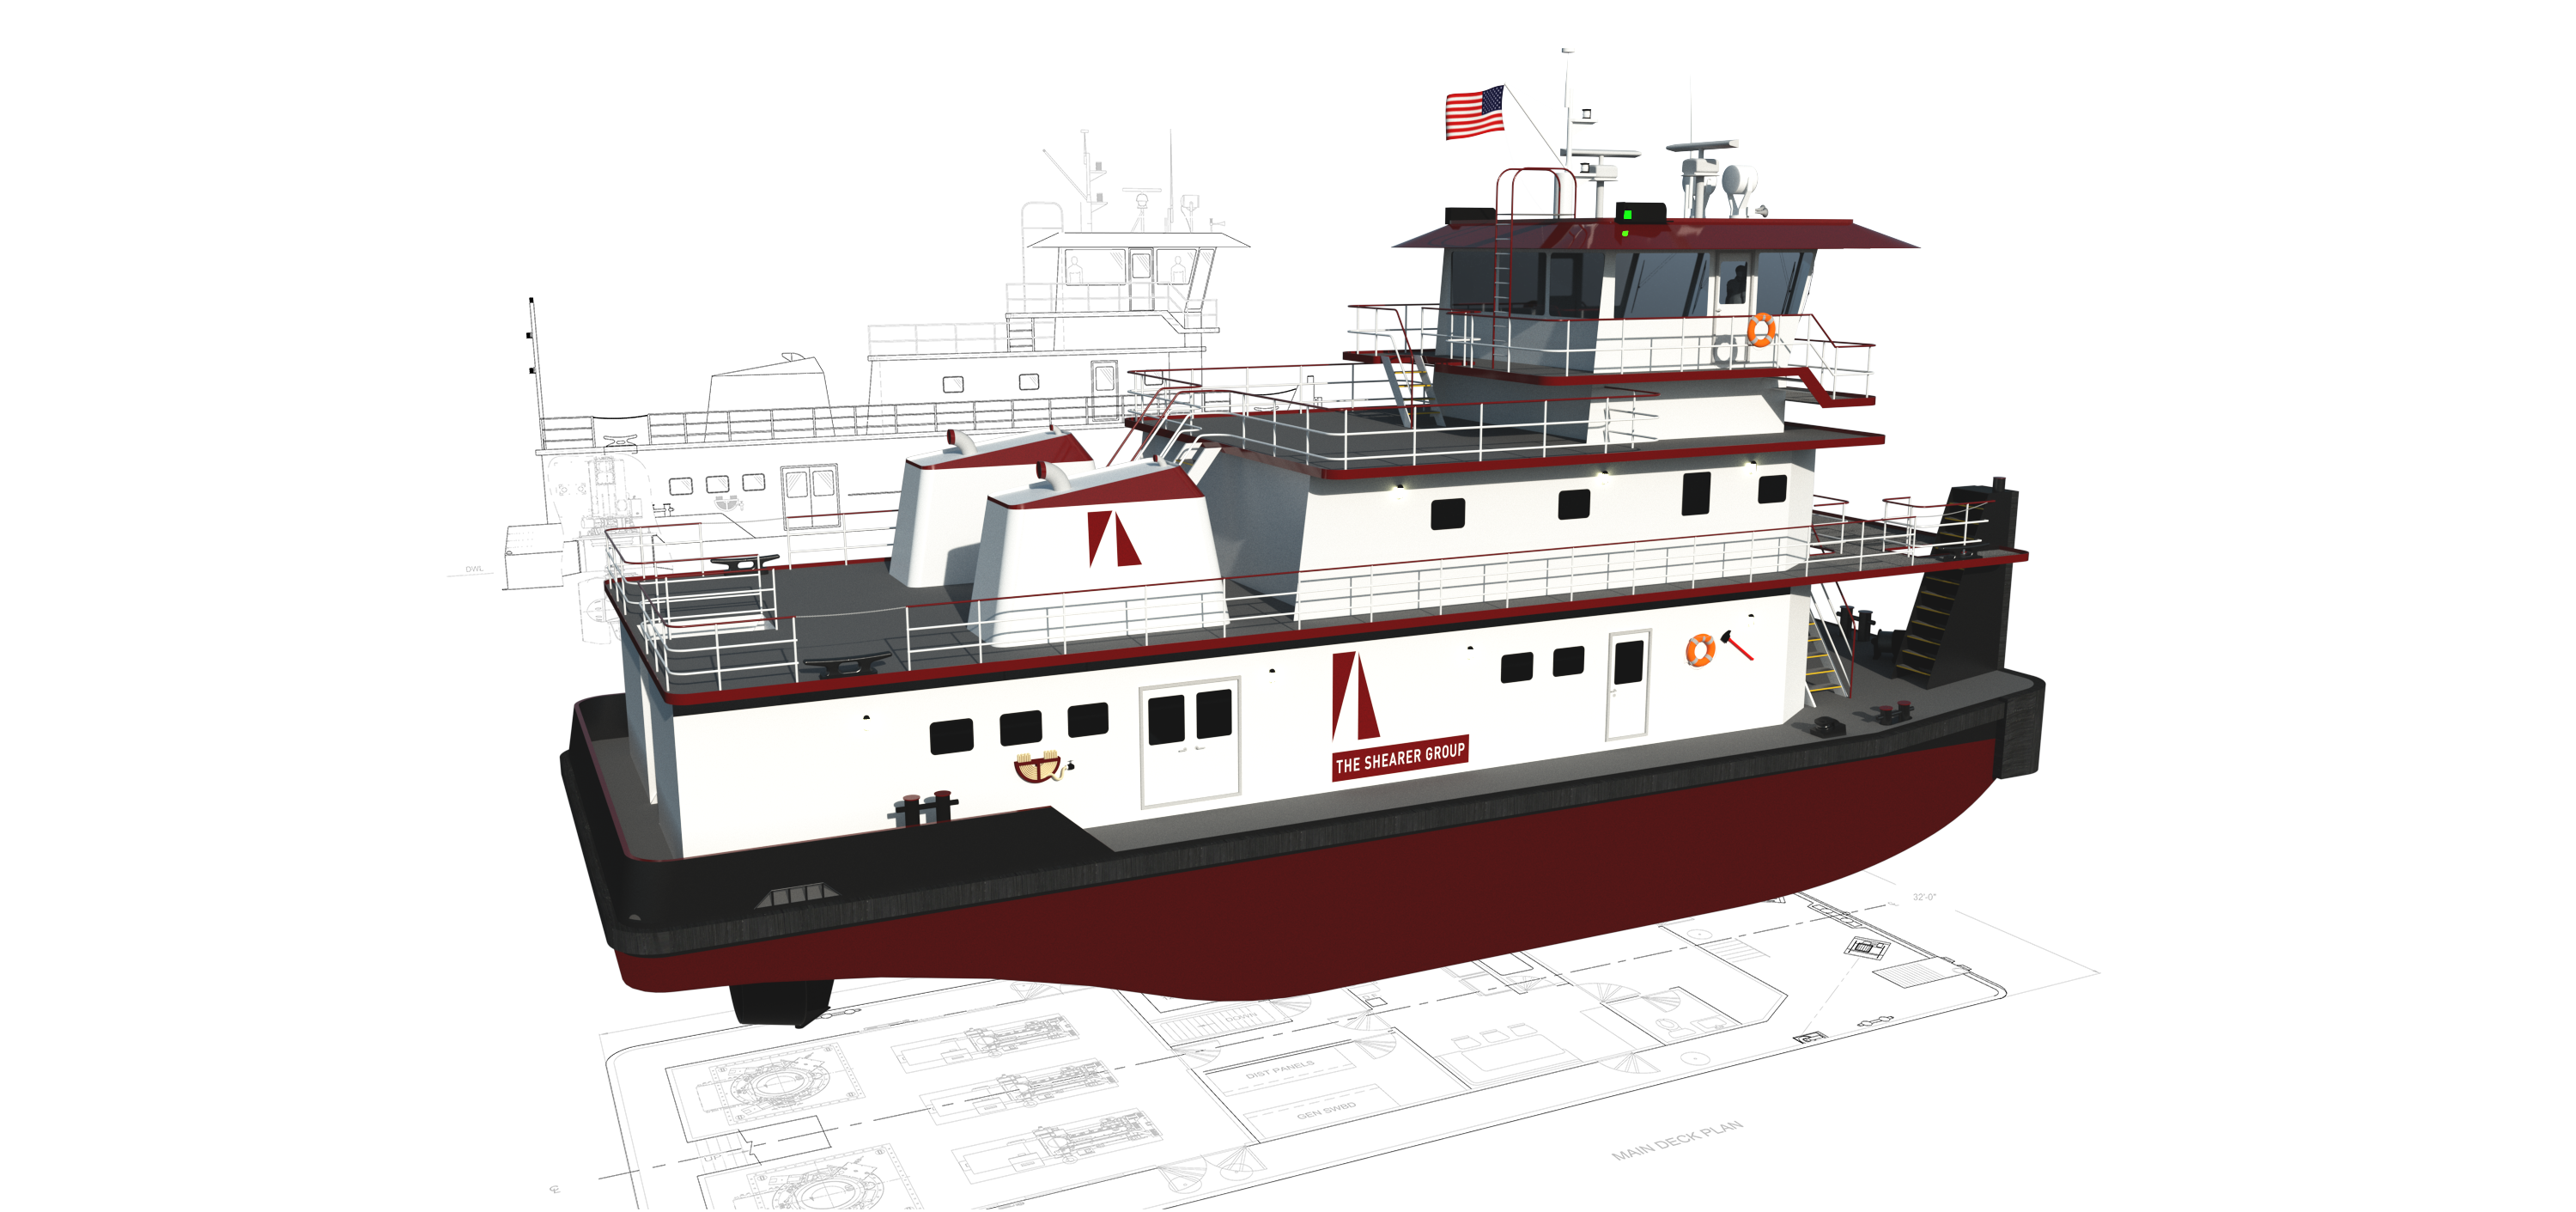 4,000 HP CONVENTIONAL SCREW INLAND TOWBOAT – The Shearer